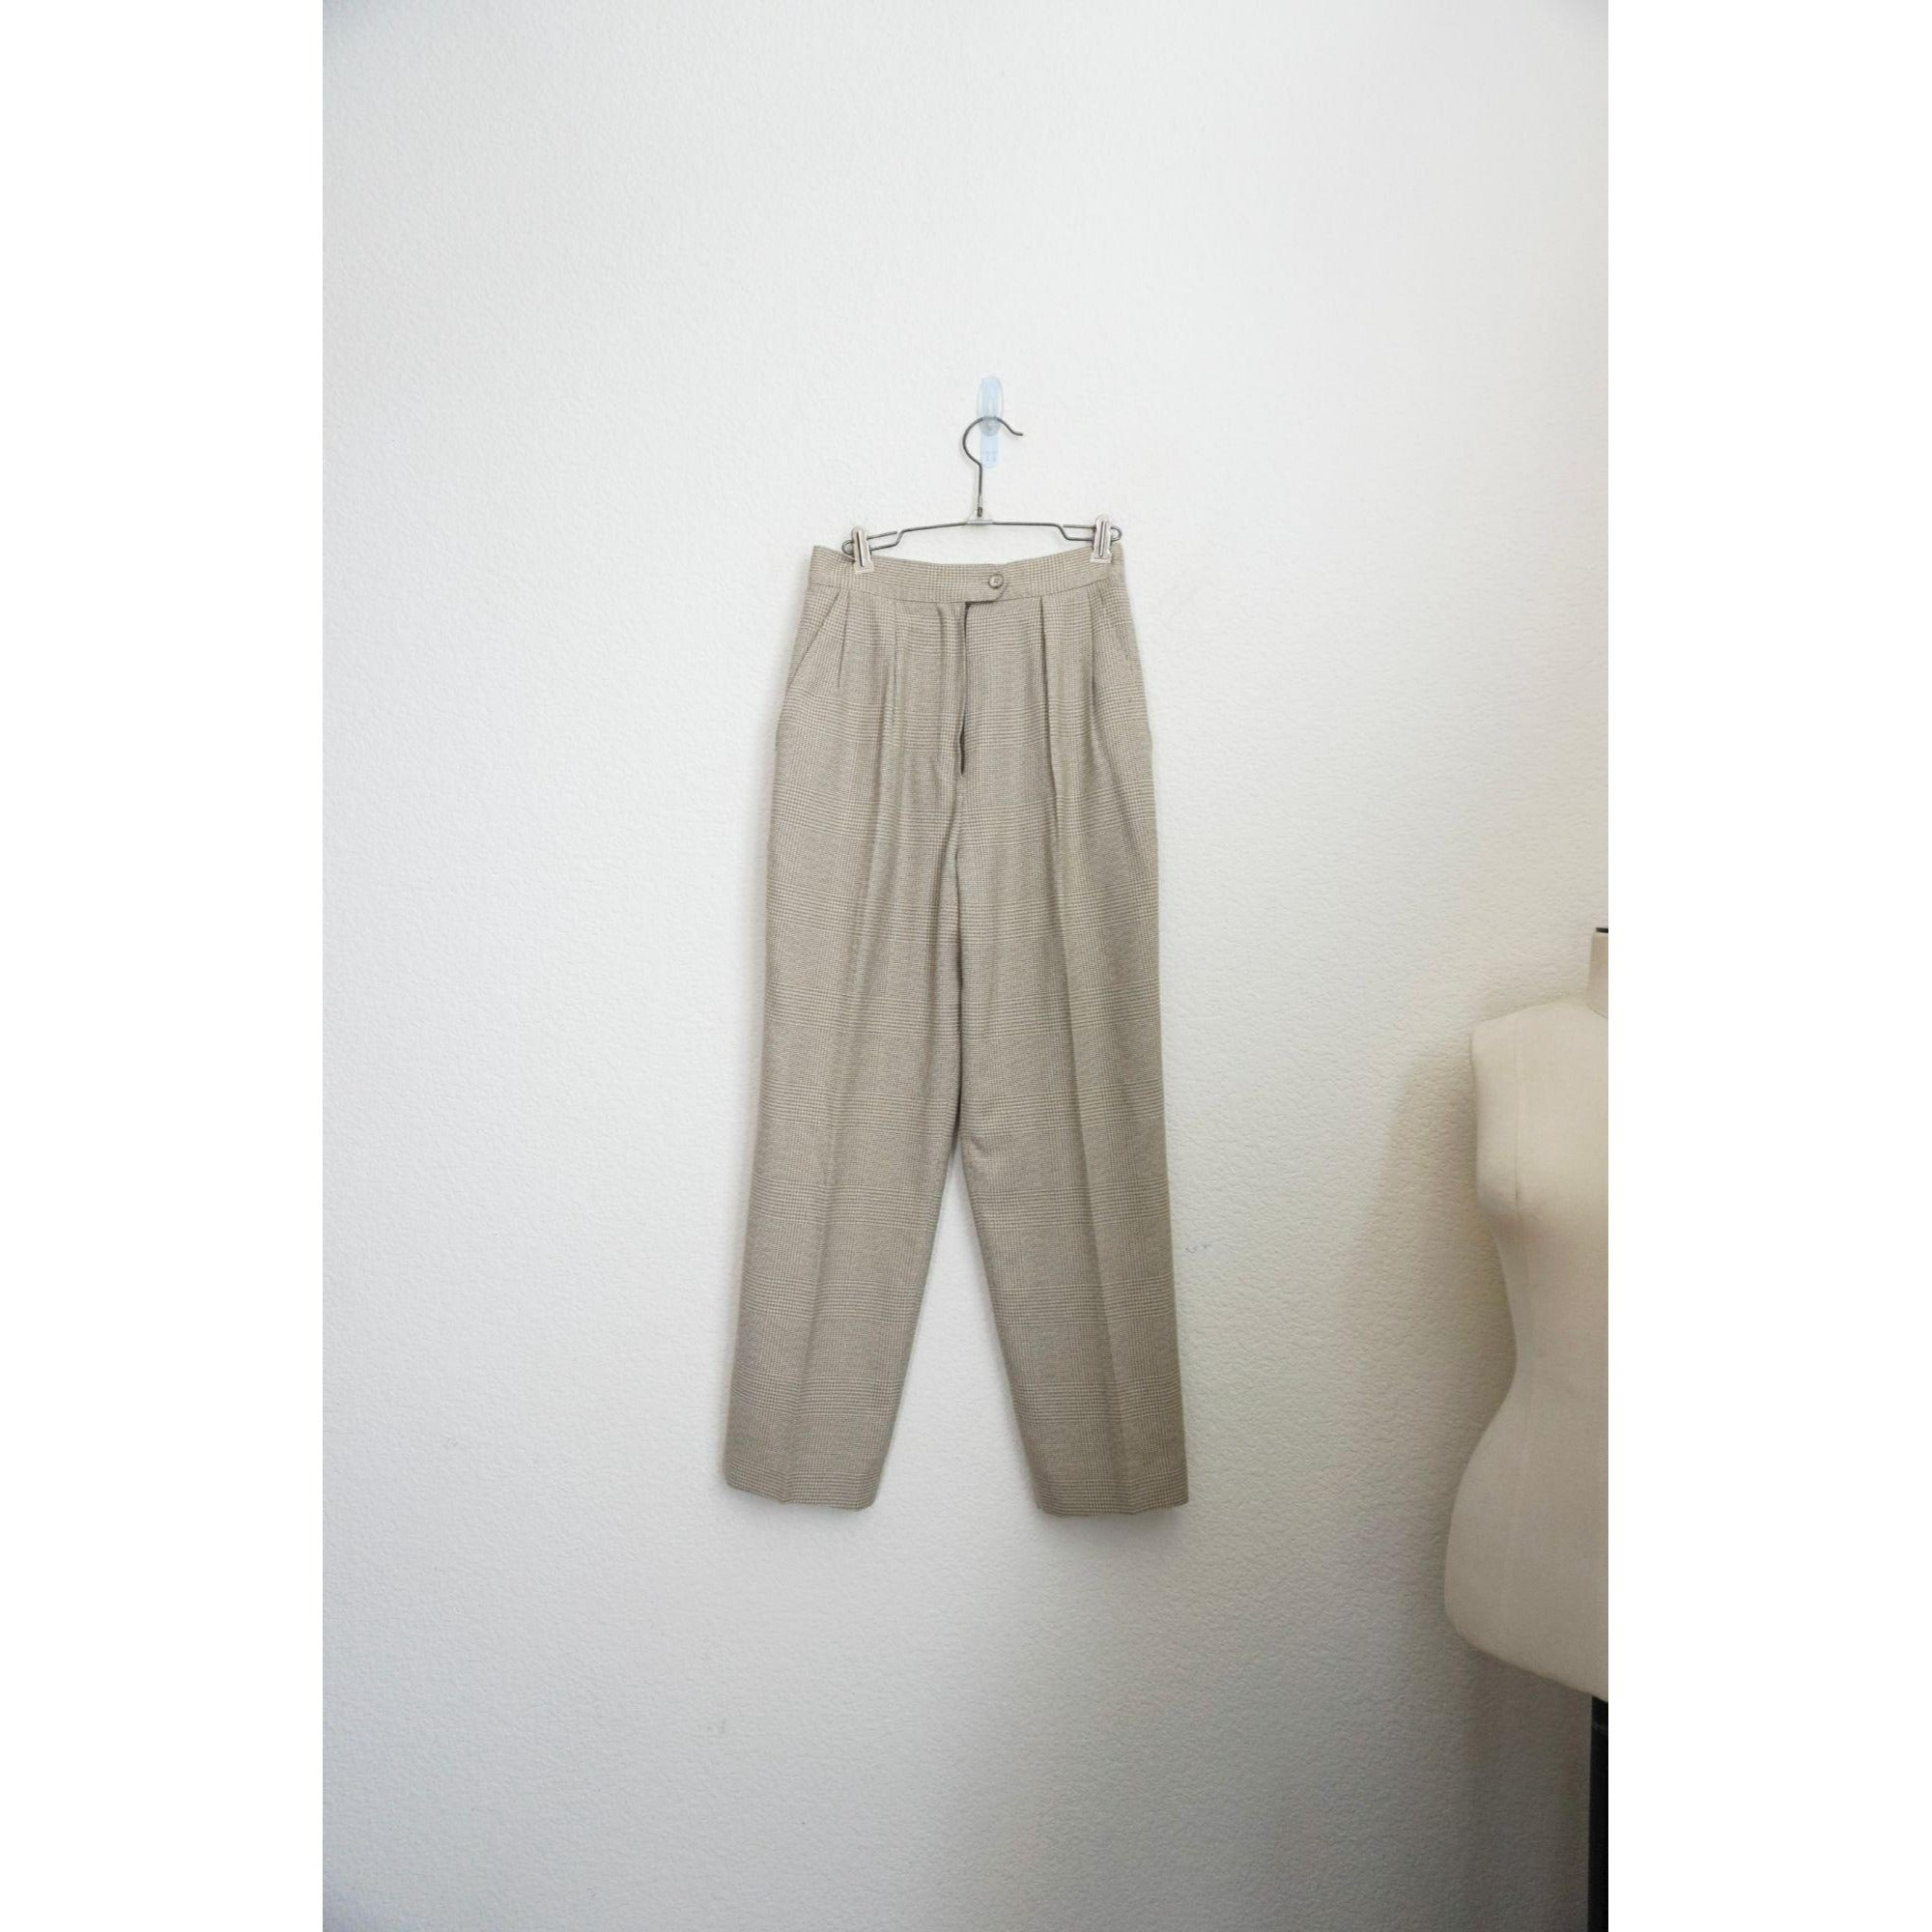 Atrium neutral plaid high rise tapered pants